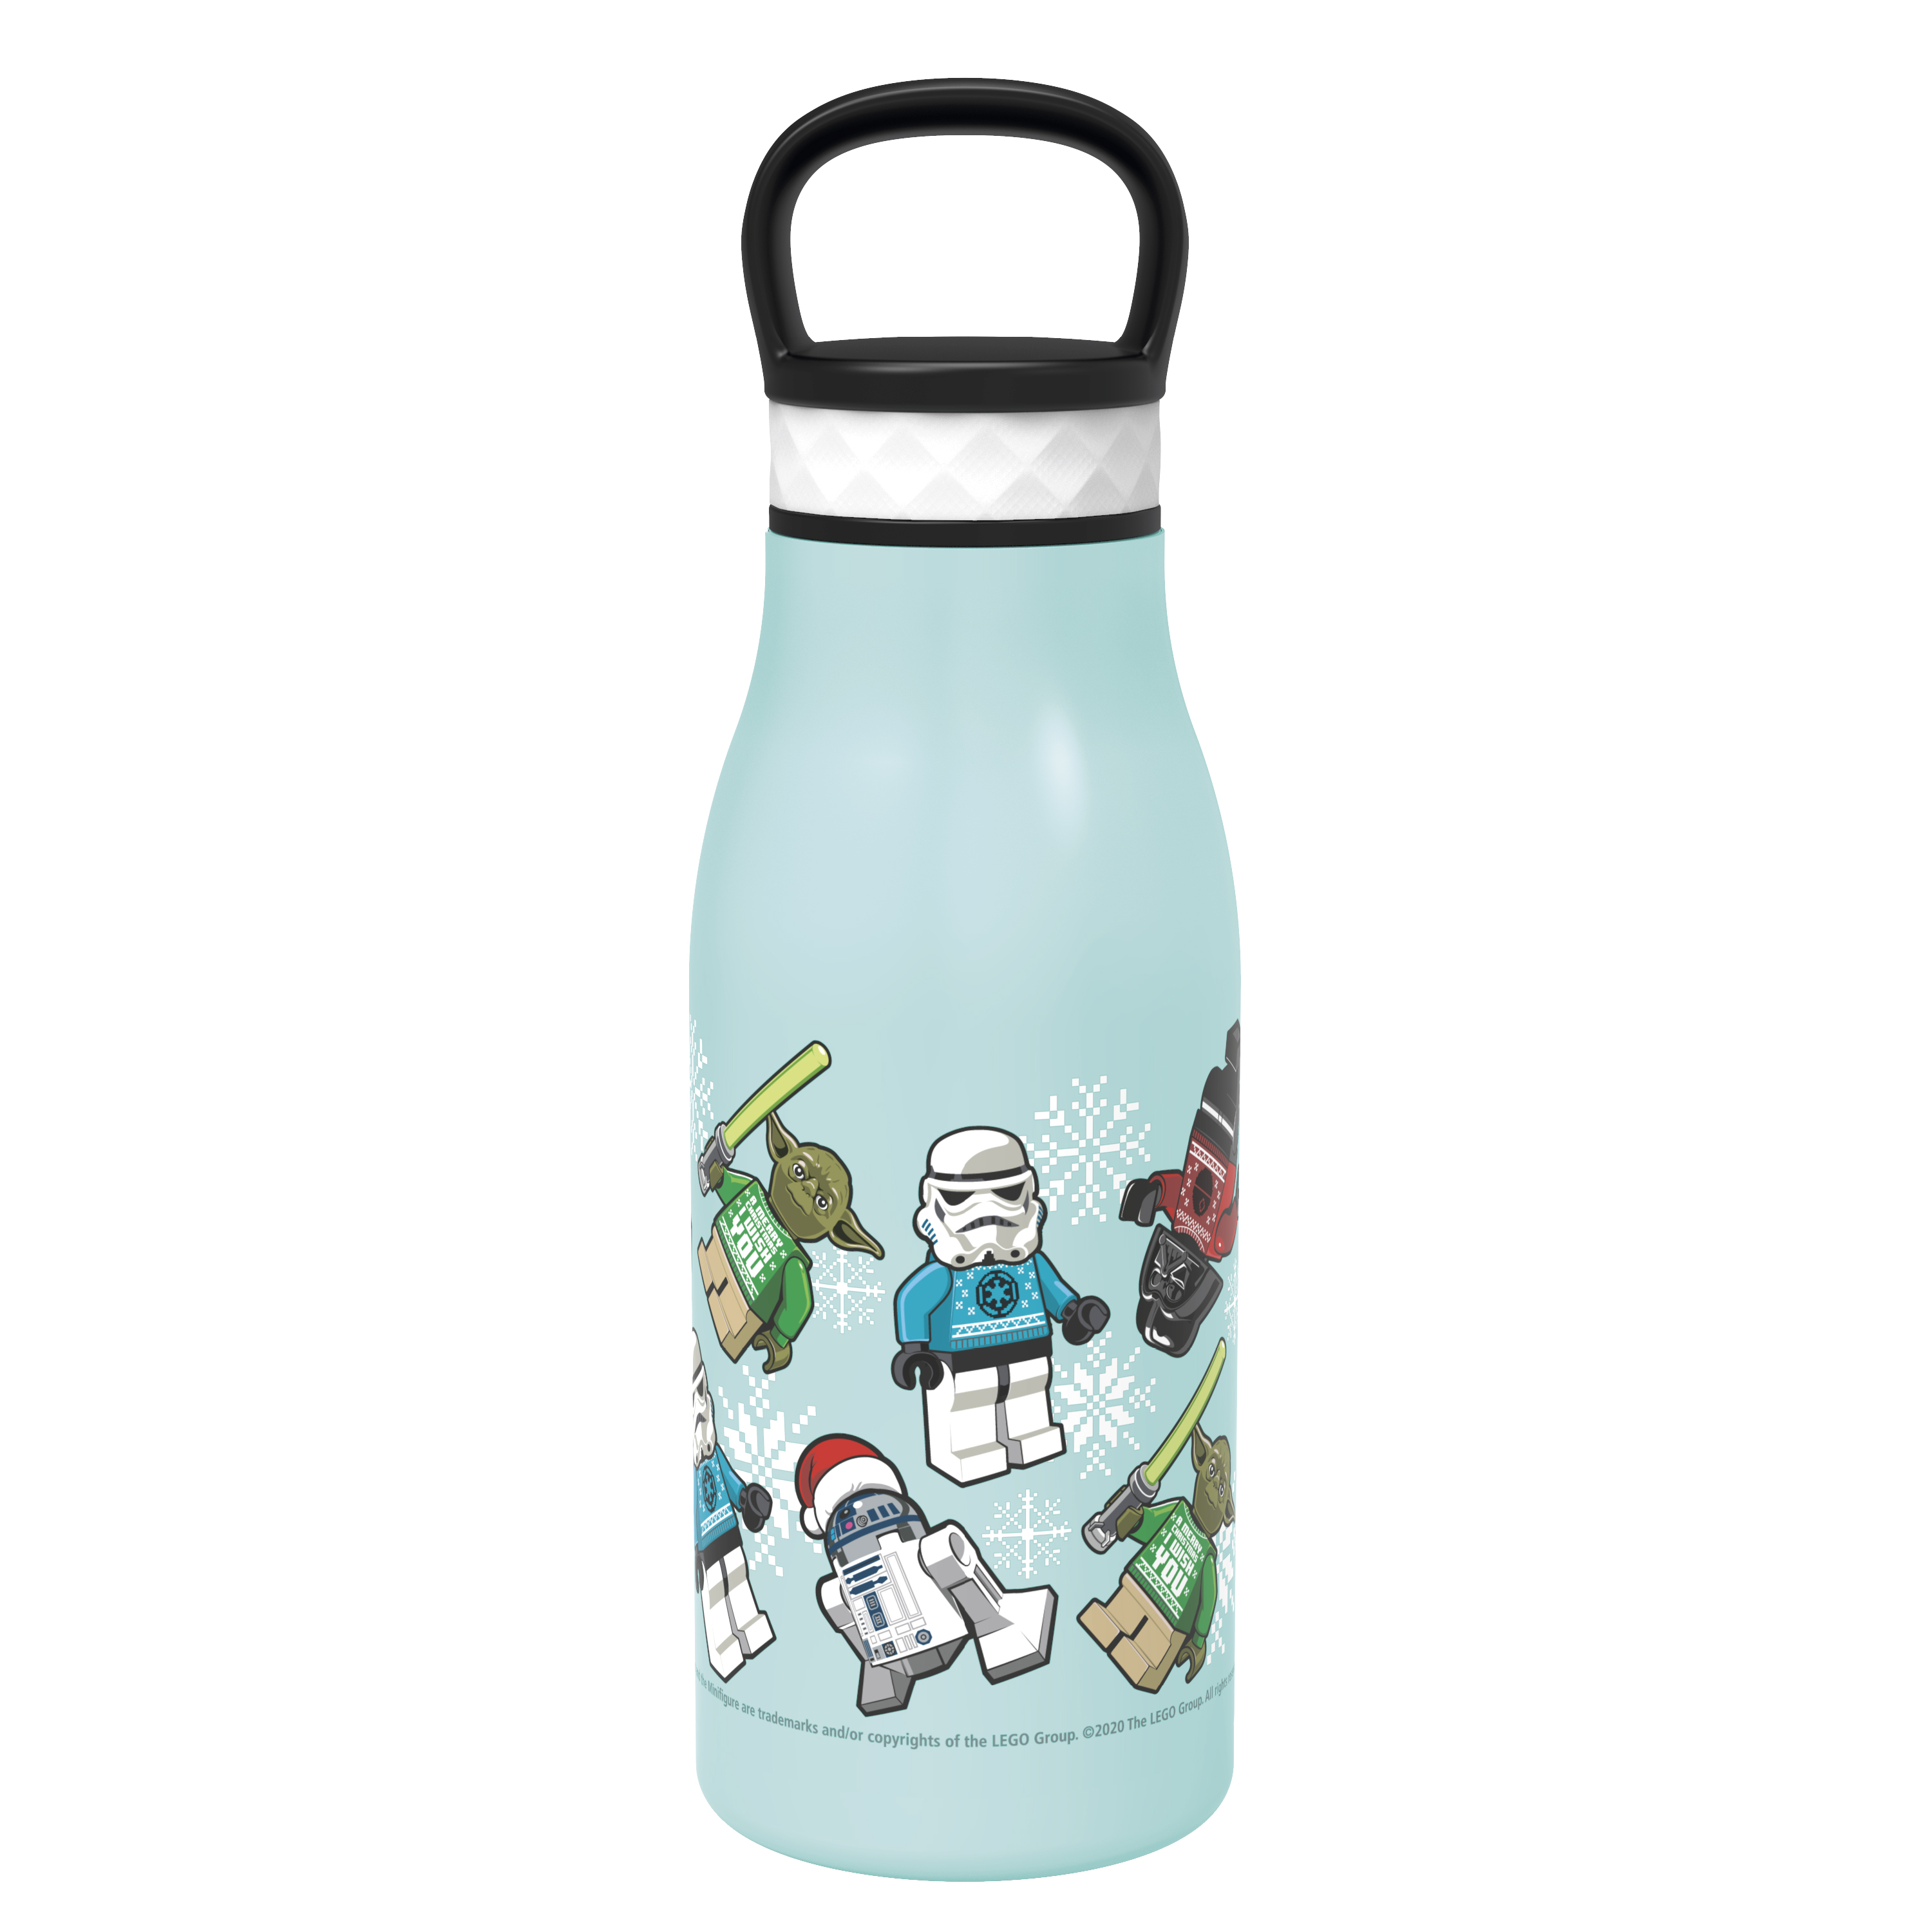 Lego Star Wars 12 ounce Stainless Steel Vacuum Insulated Water Bottle, Darth Vader, Stormtroopers and Yoda slideshow image 1